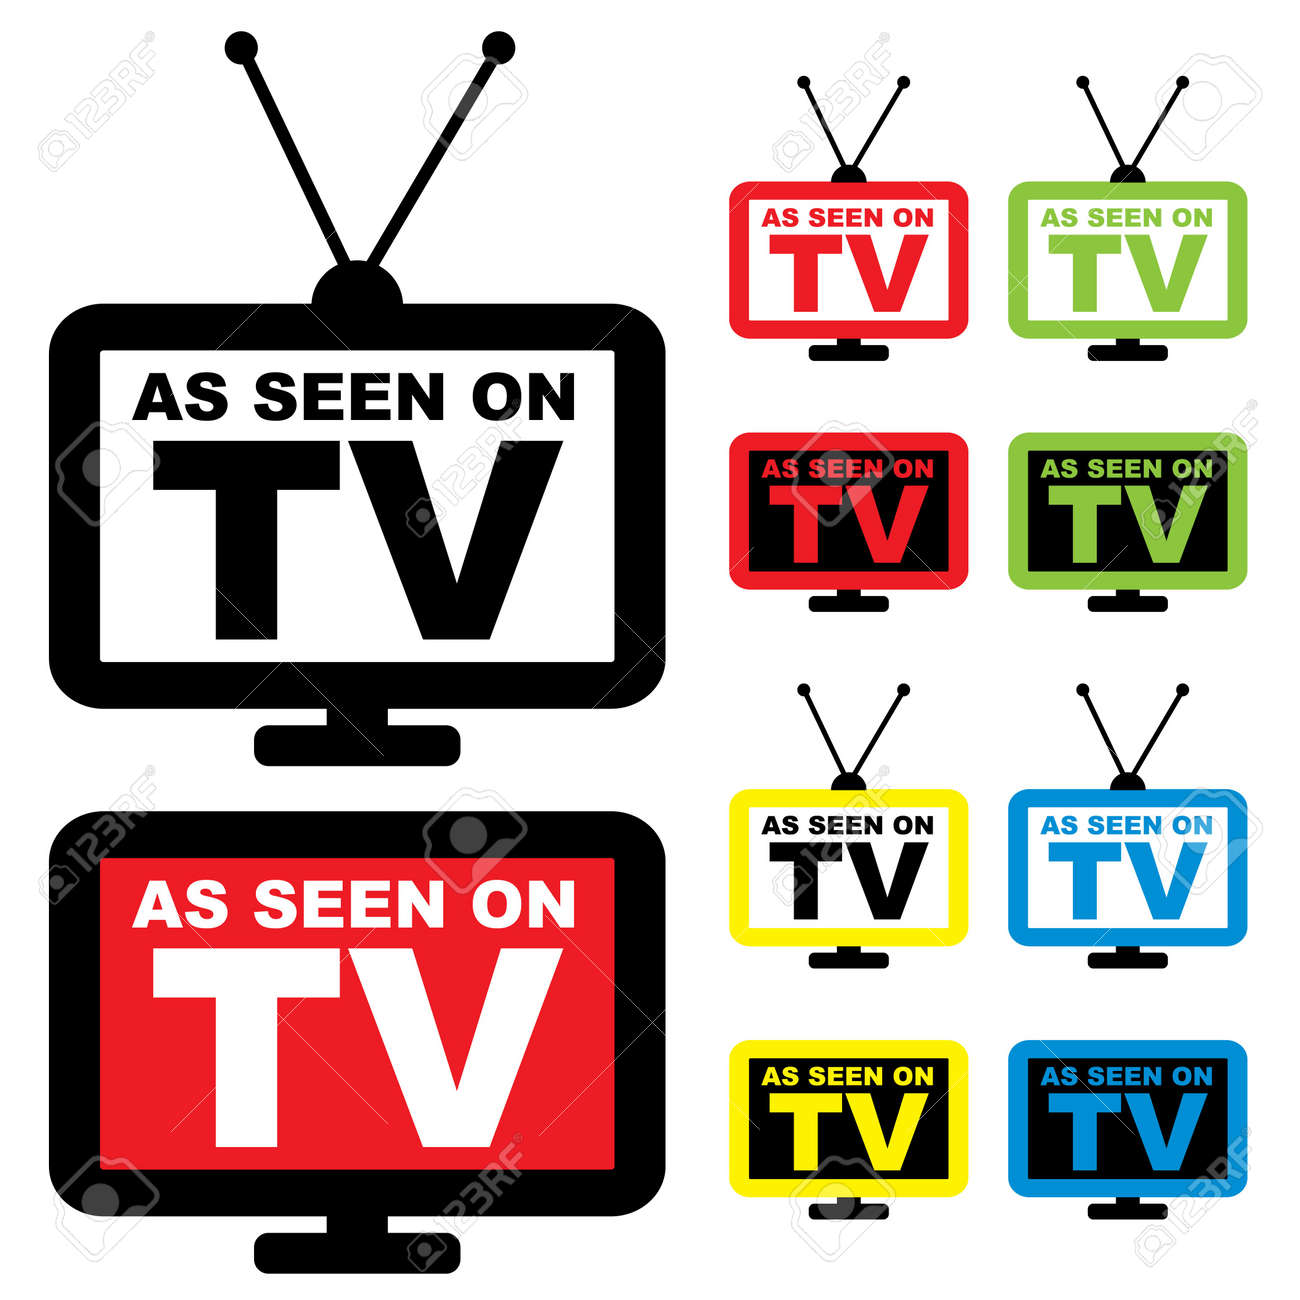 Collection of as seen on TV icon with television aerial Stock Photo - 7223420